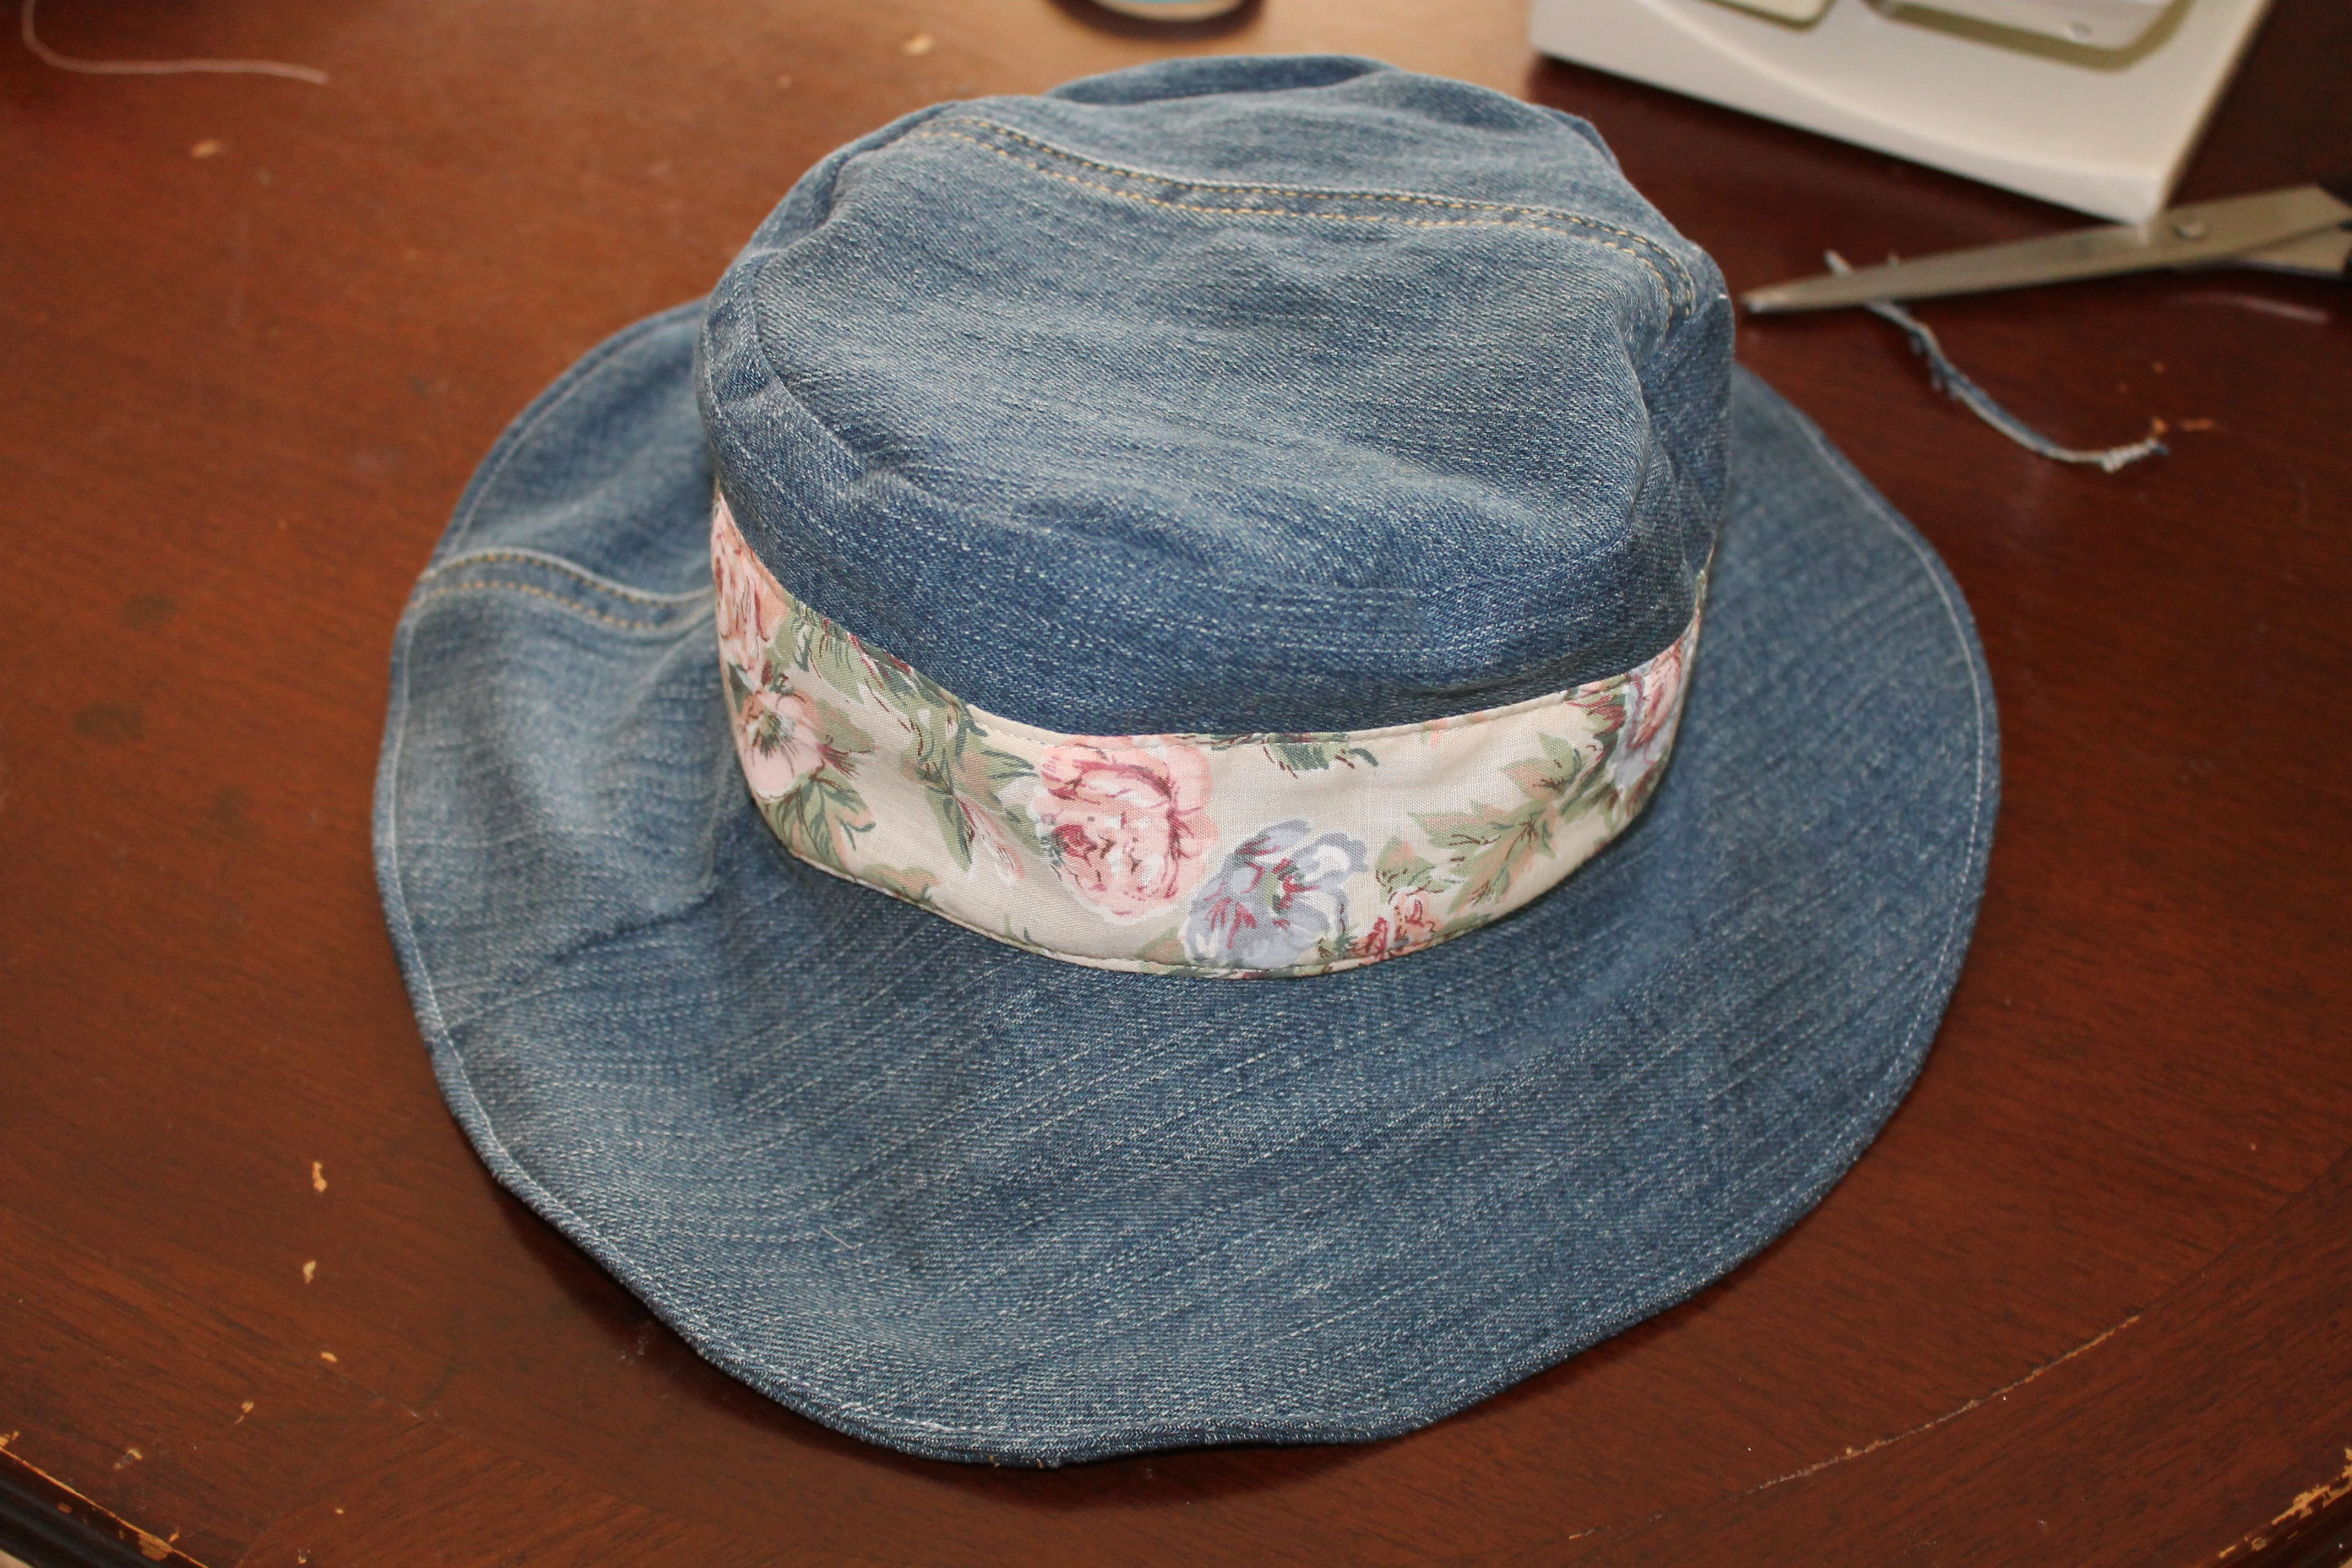 Welcome to this weekend's sewing project at the shed. Ever wondered what to do with those old jeans?? Here is a FREE pattern to turn them into this cute denim hat.  For this project you will ...